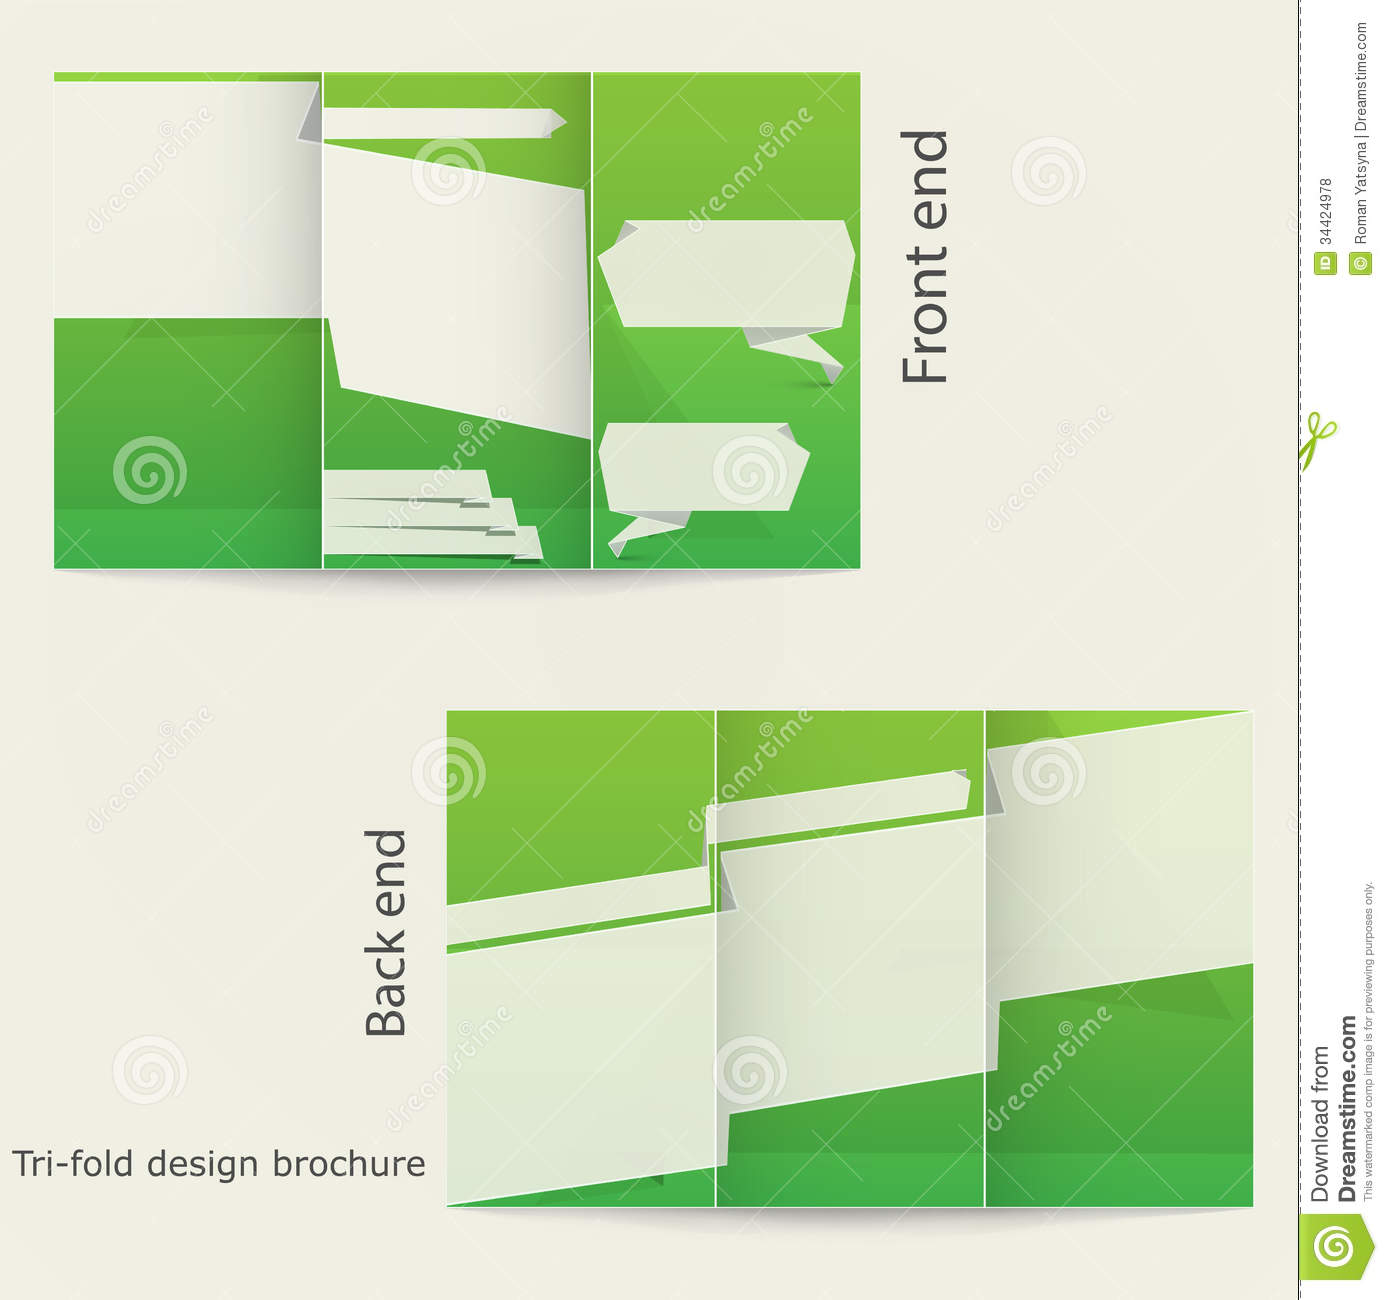 6 fold brochure template - tri fold brochure design stock vector image of message